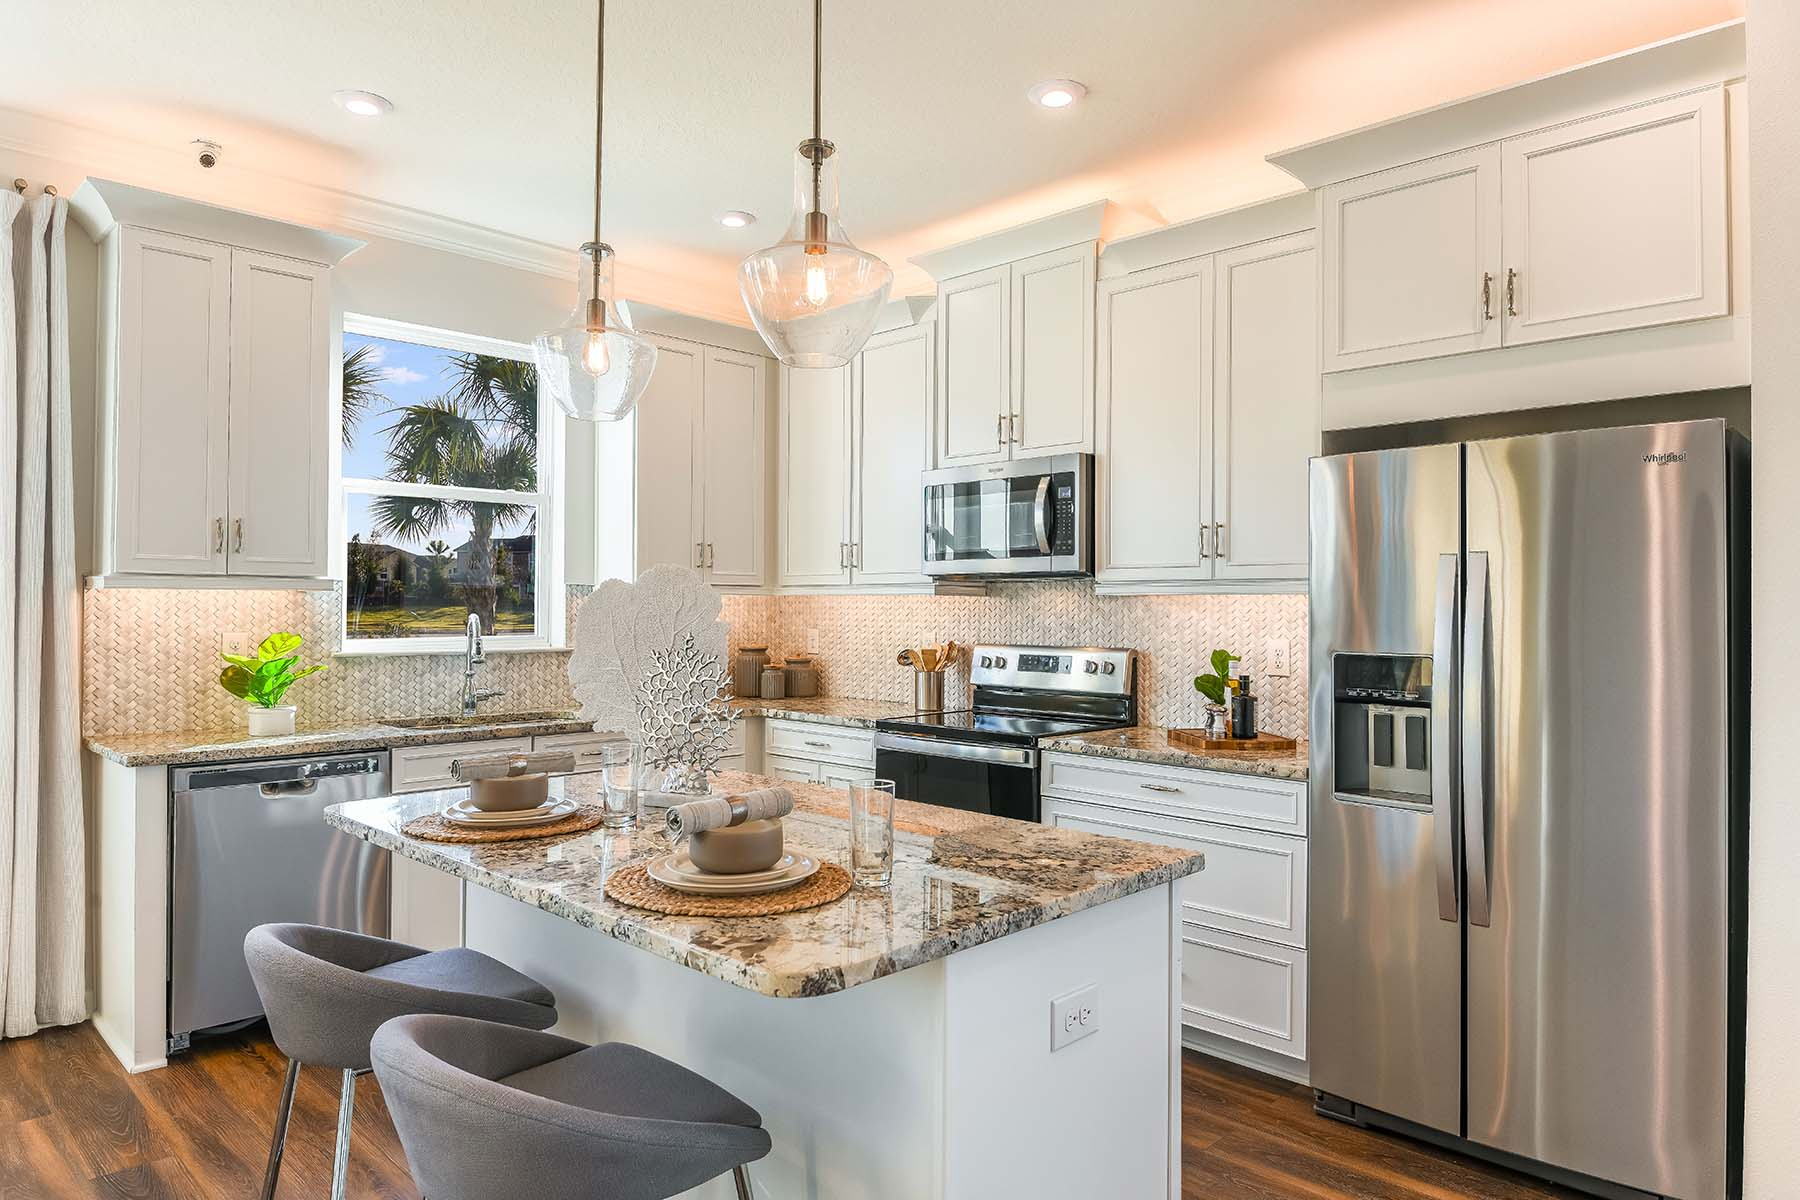 Harmony at Lakewood Ranch Kitchen in Lakewood Ranch Florida by Mattamy Homes